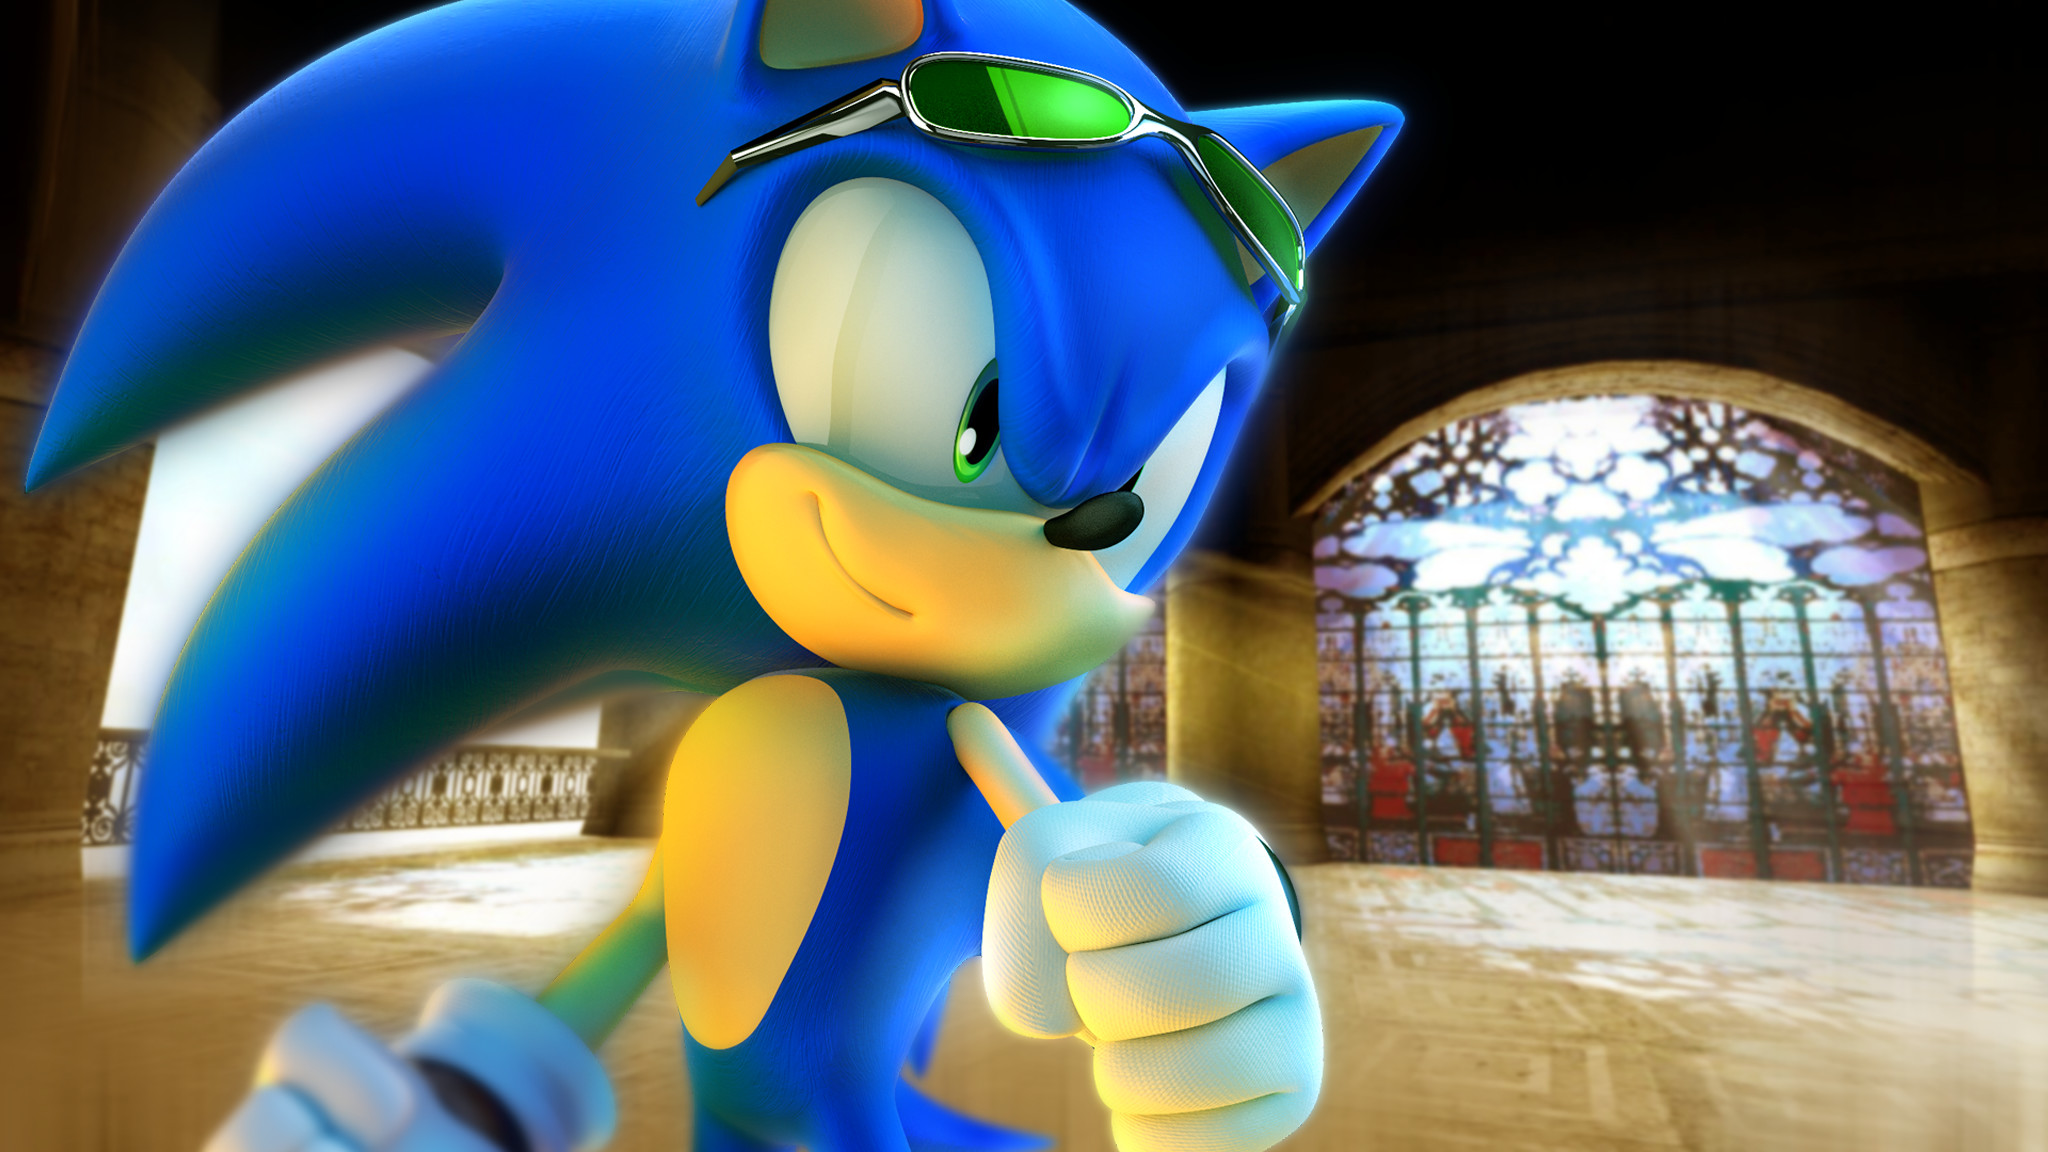 2048x1152 ... RealSonicSpeed Sonic in a Digital Dimension by RealSonicSpeed